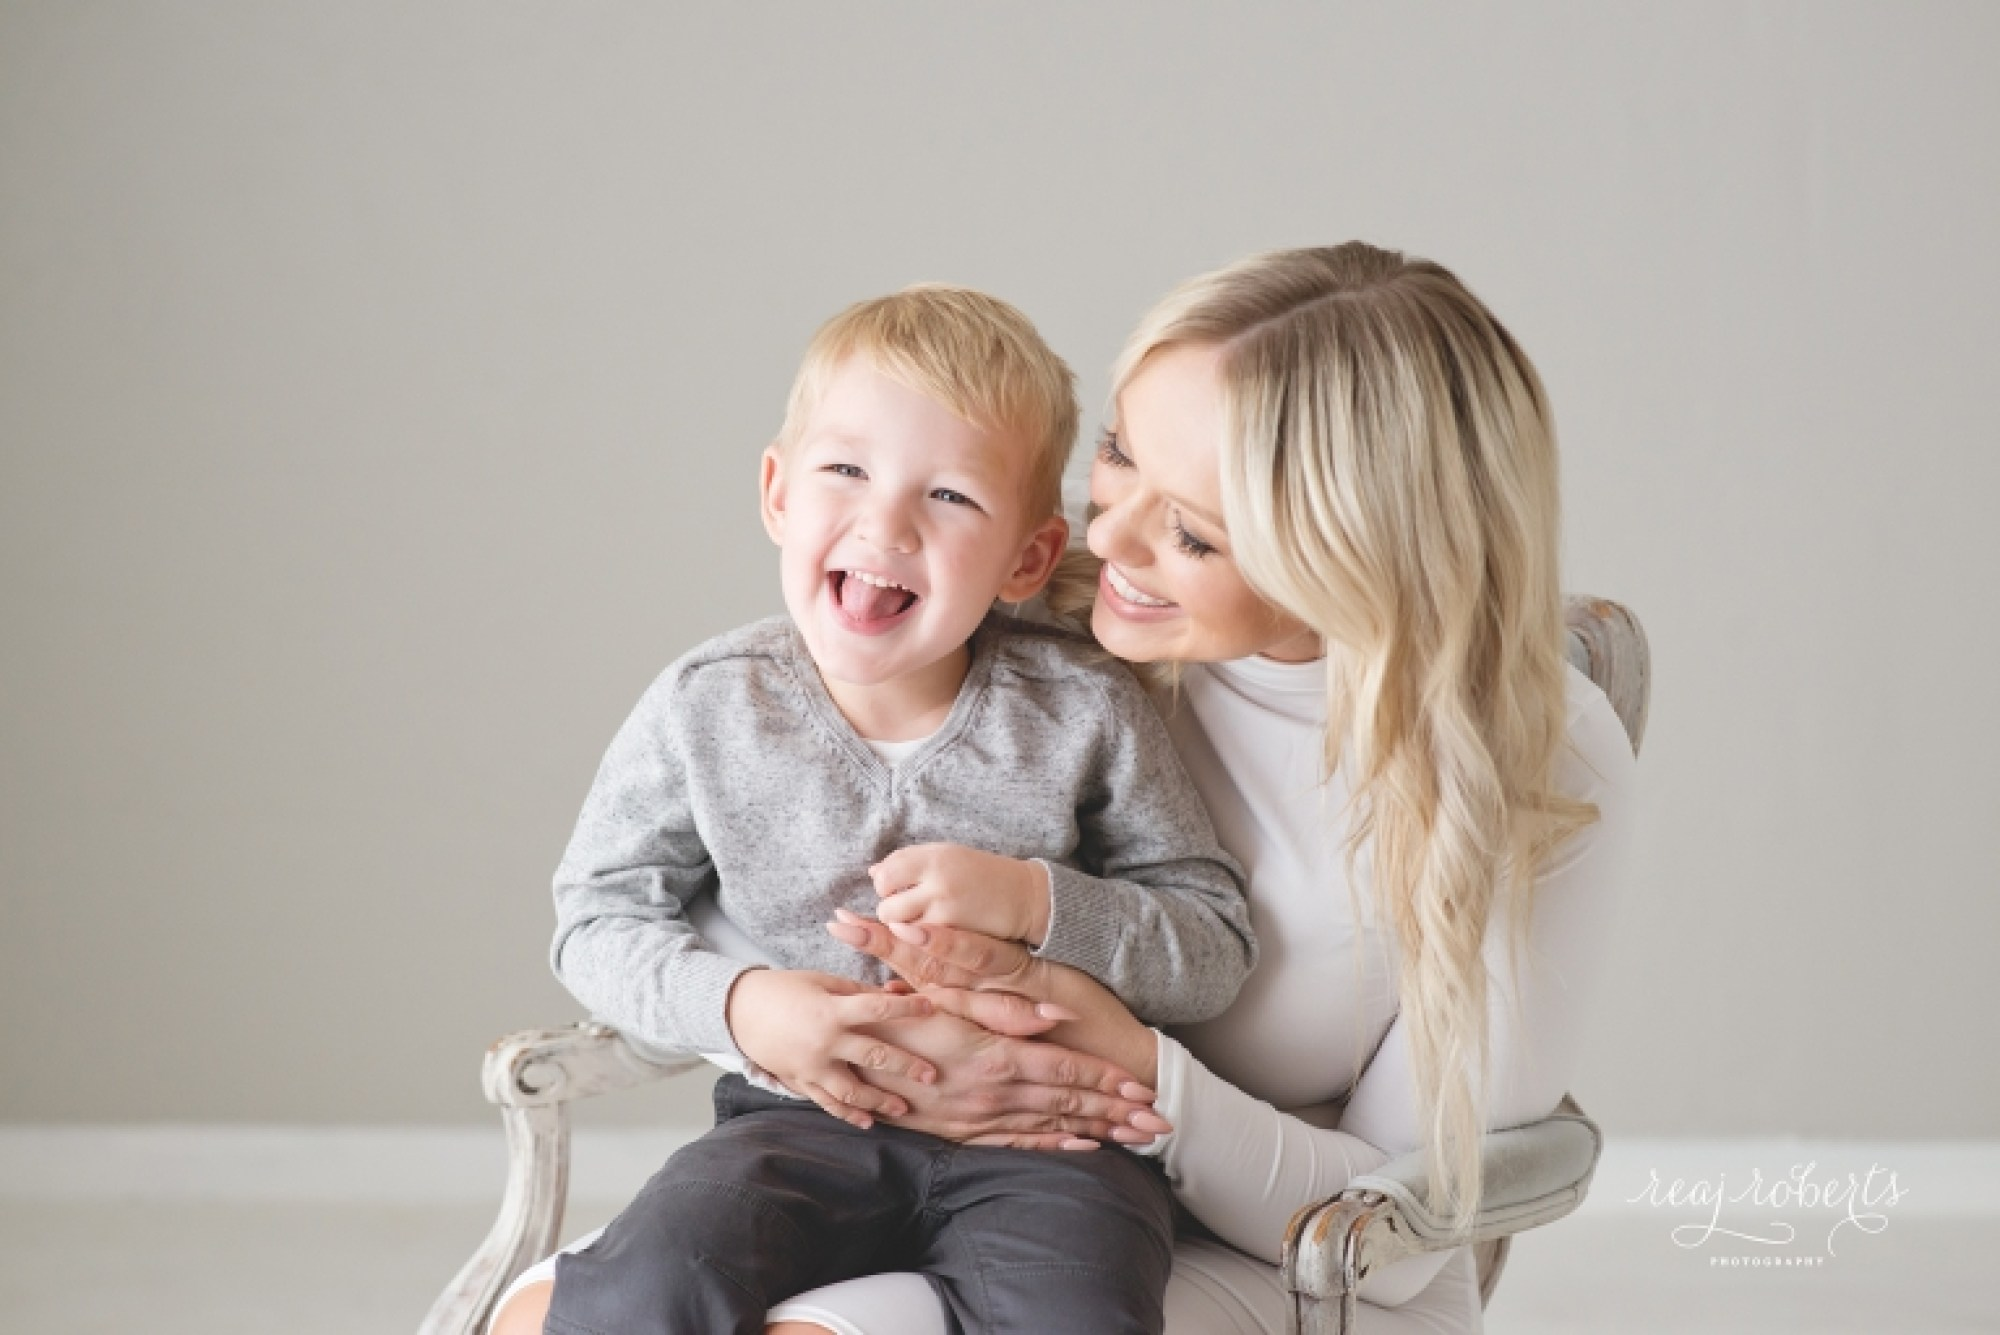 Mommy and Me Portraits | Reaj Roberts Photography